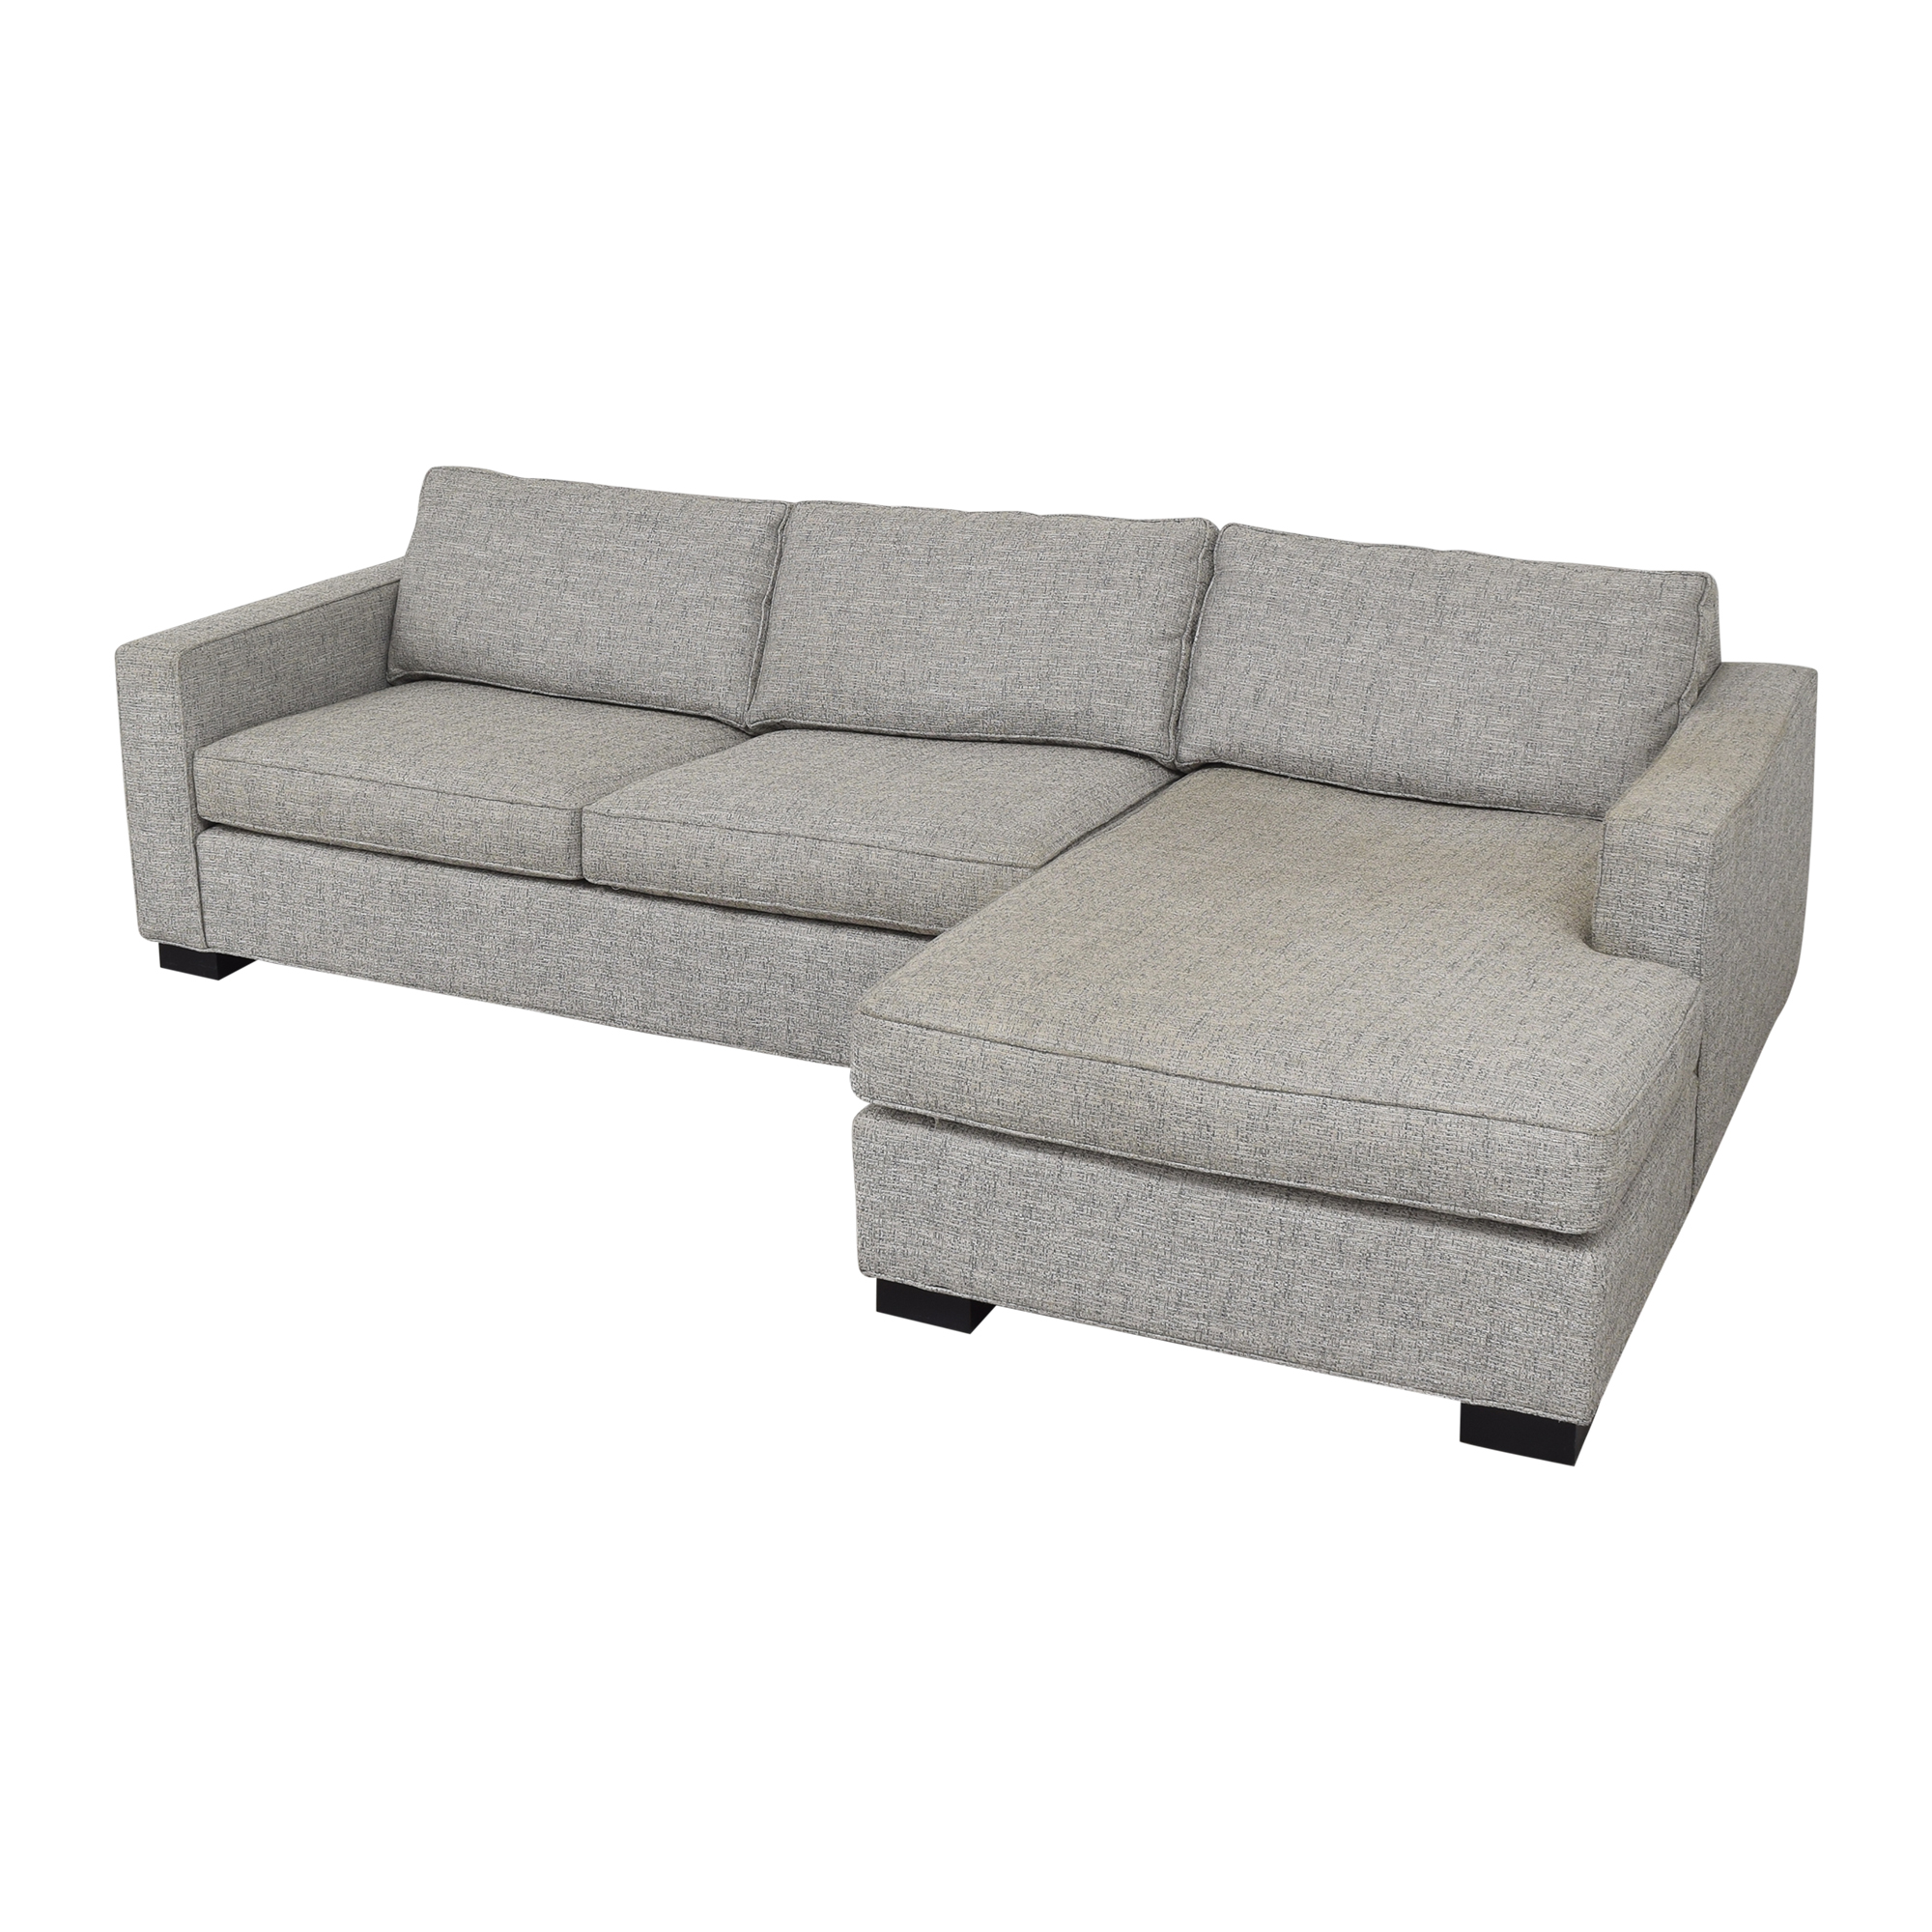 Mitchell Gold + Bob Williams Chaise Sectional Mitchell Gold + Bob Williams